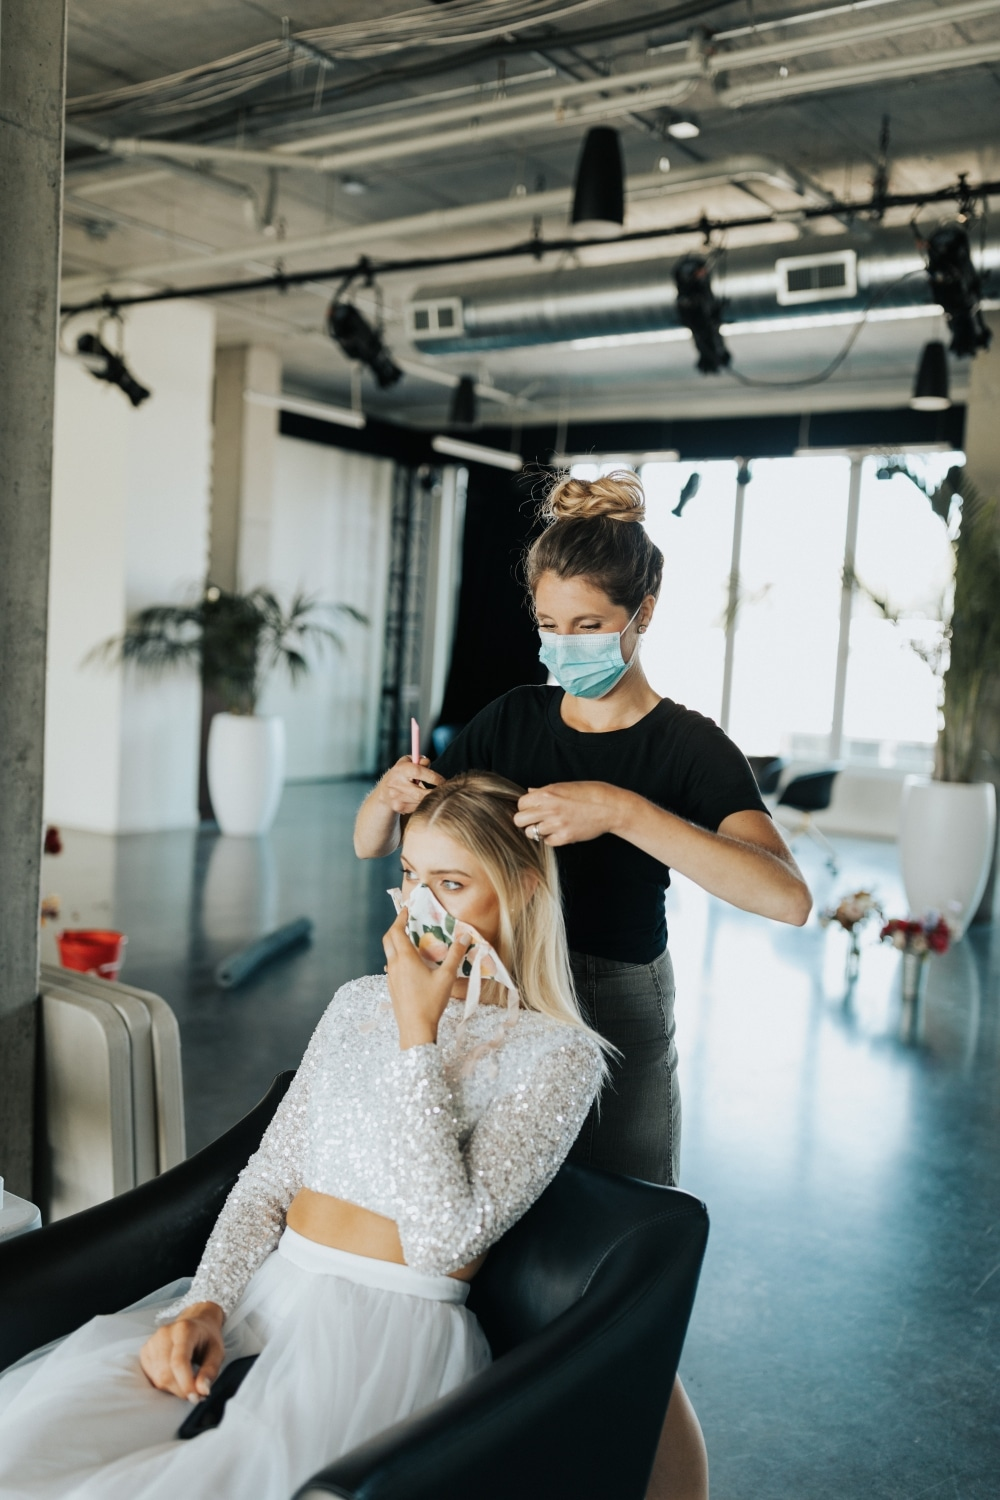 bride getting hair done with mask on both bride and hairdresser